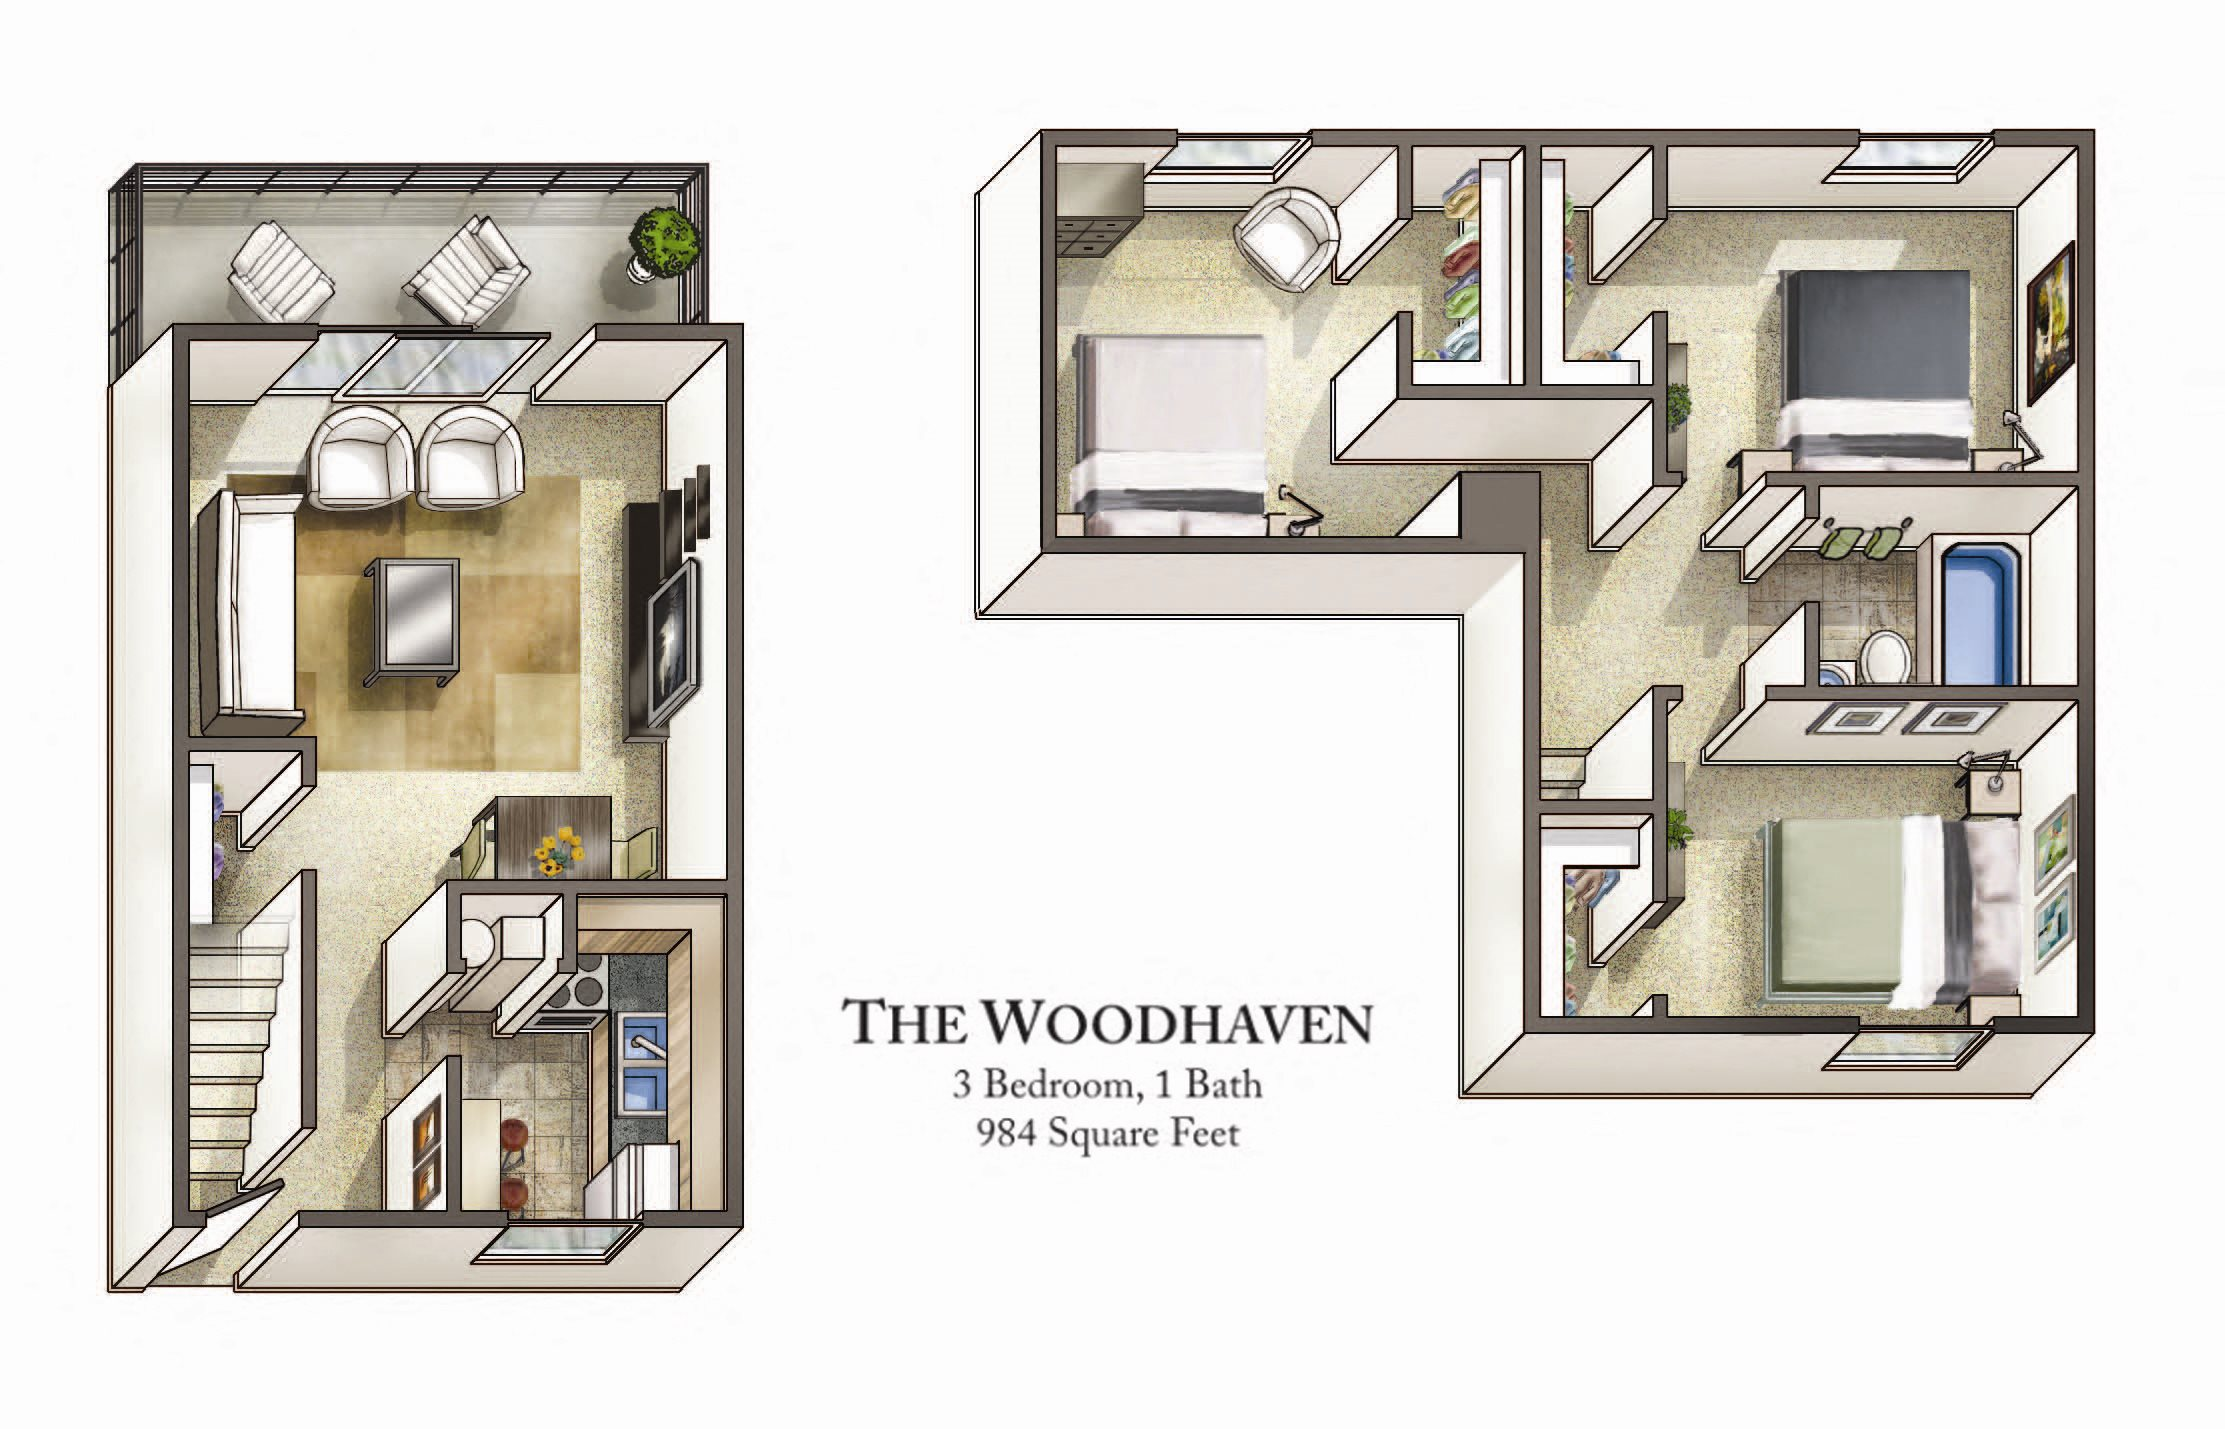 The Woodhaven